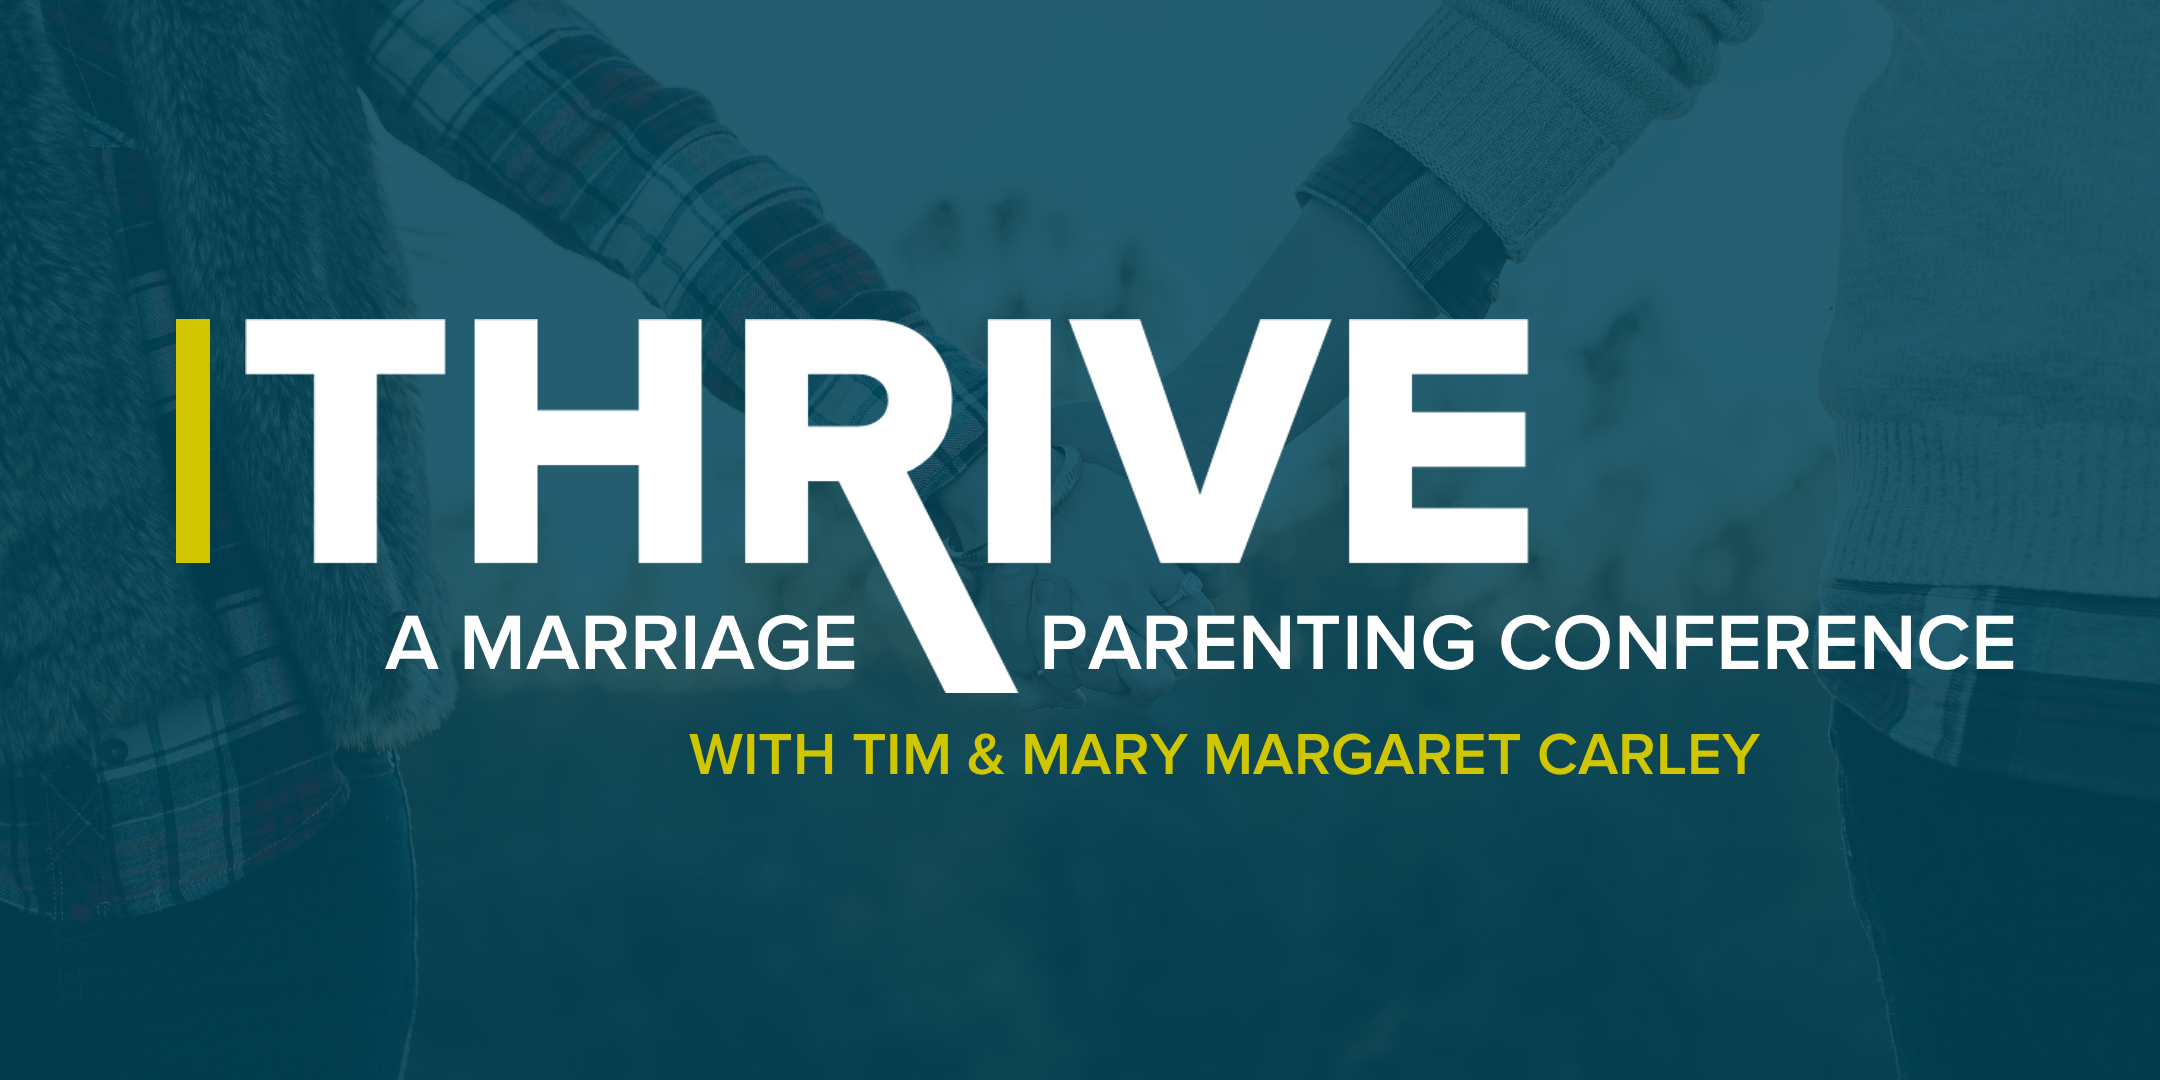 Immanuel Thrive Conference (EventBrite).png